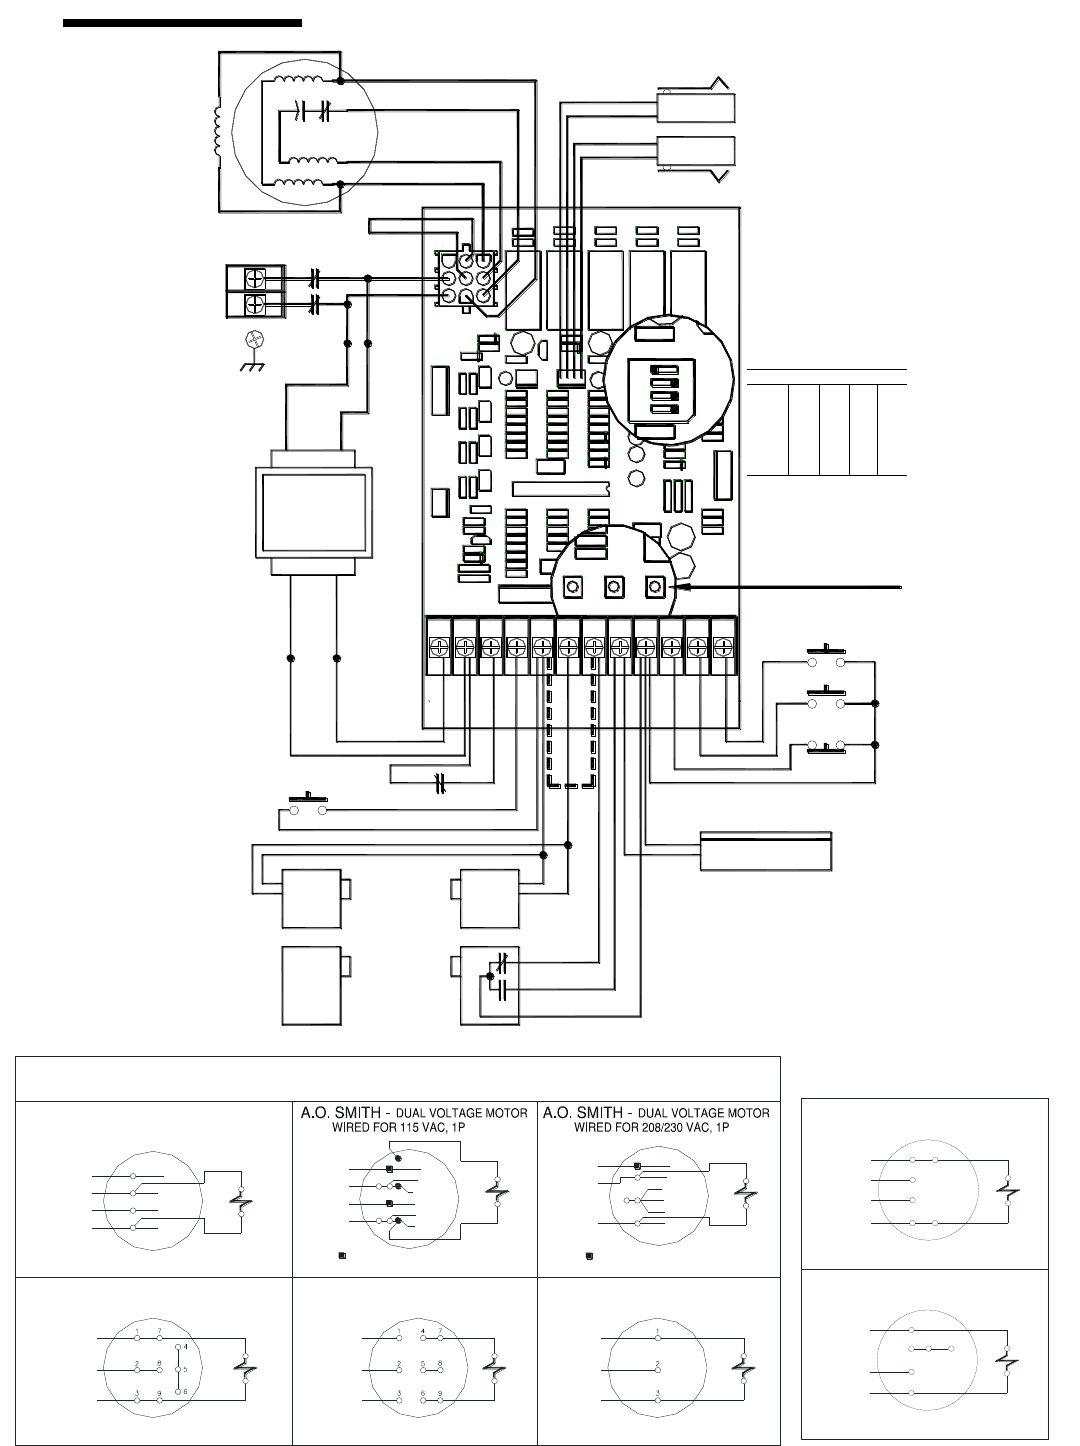 9028f597 4ae9 412f a06d e76d1de71b42 bg16 page 22 of linear garage door opener j s user guide garage door opener wiring schematic at n-0.co